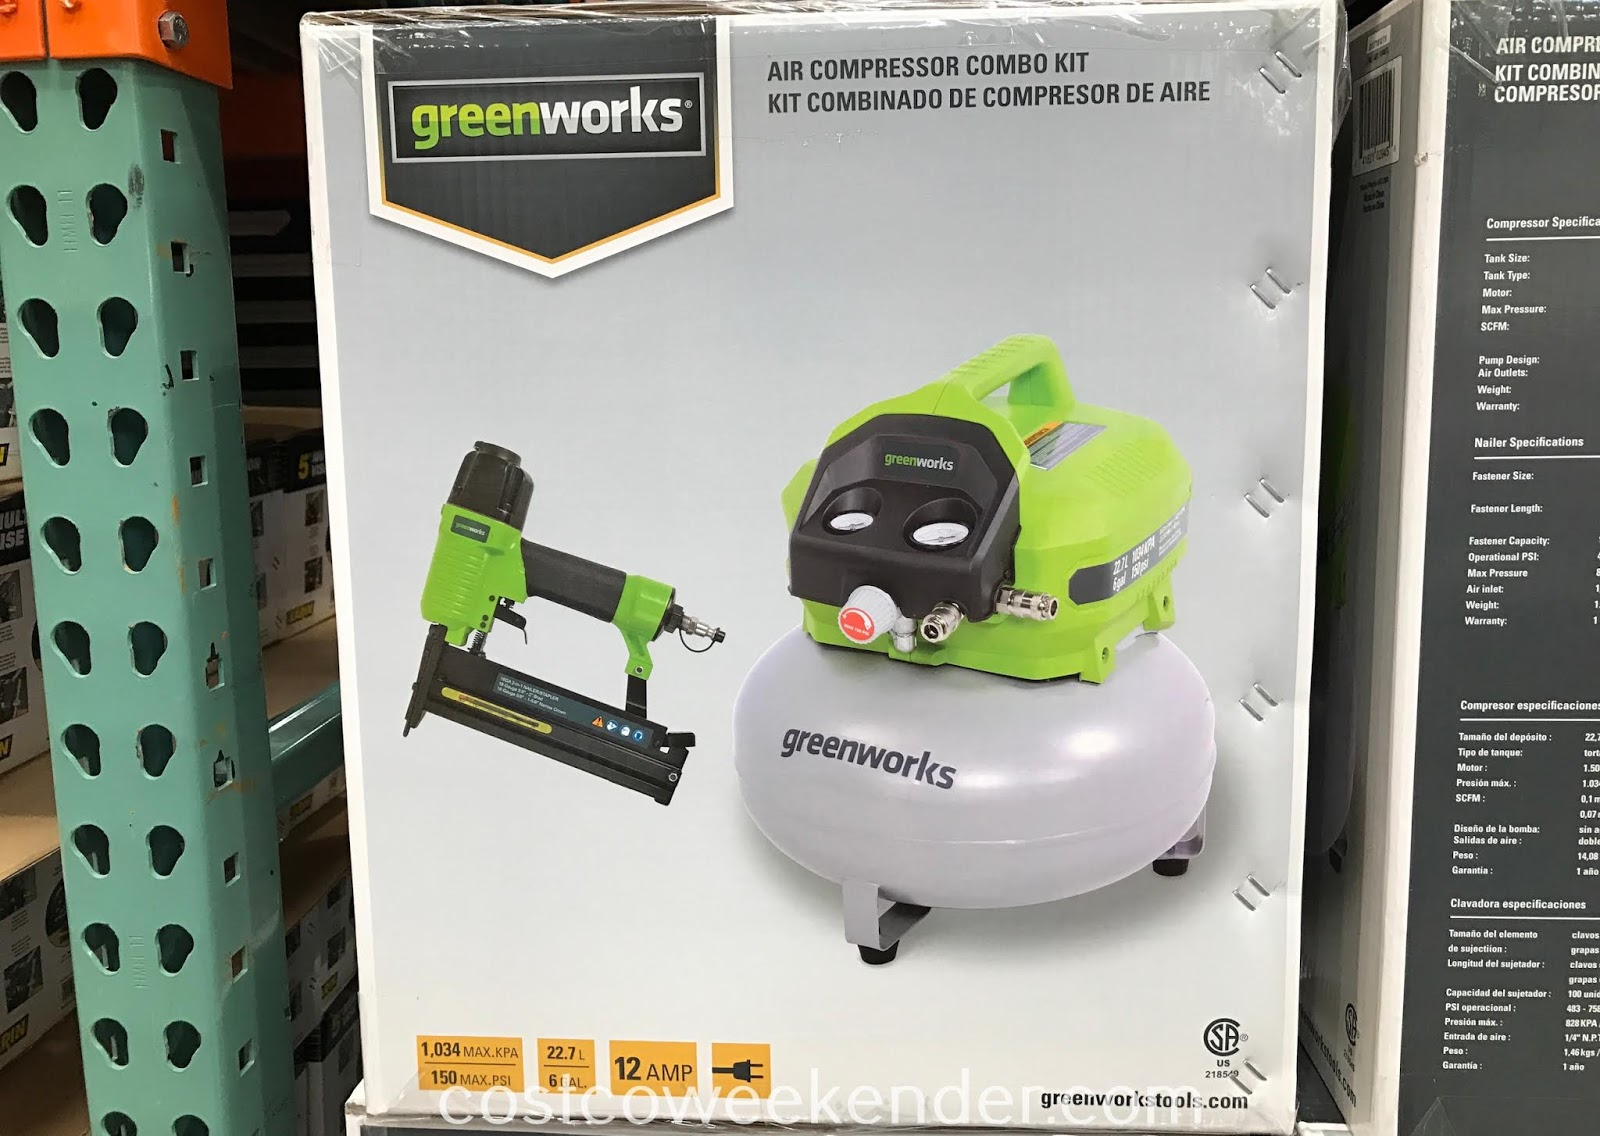 Costco 1144077 - Working in your garage just got easier with the Greenworks 6-gallon Air Compressor Combo Kit